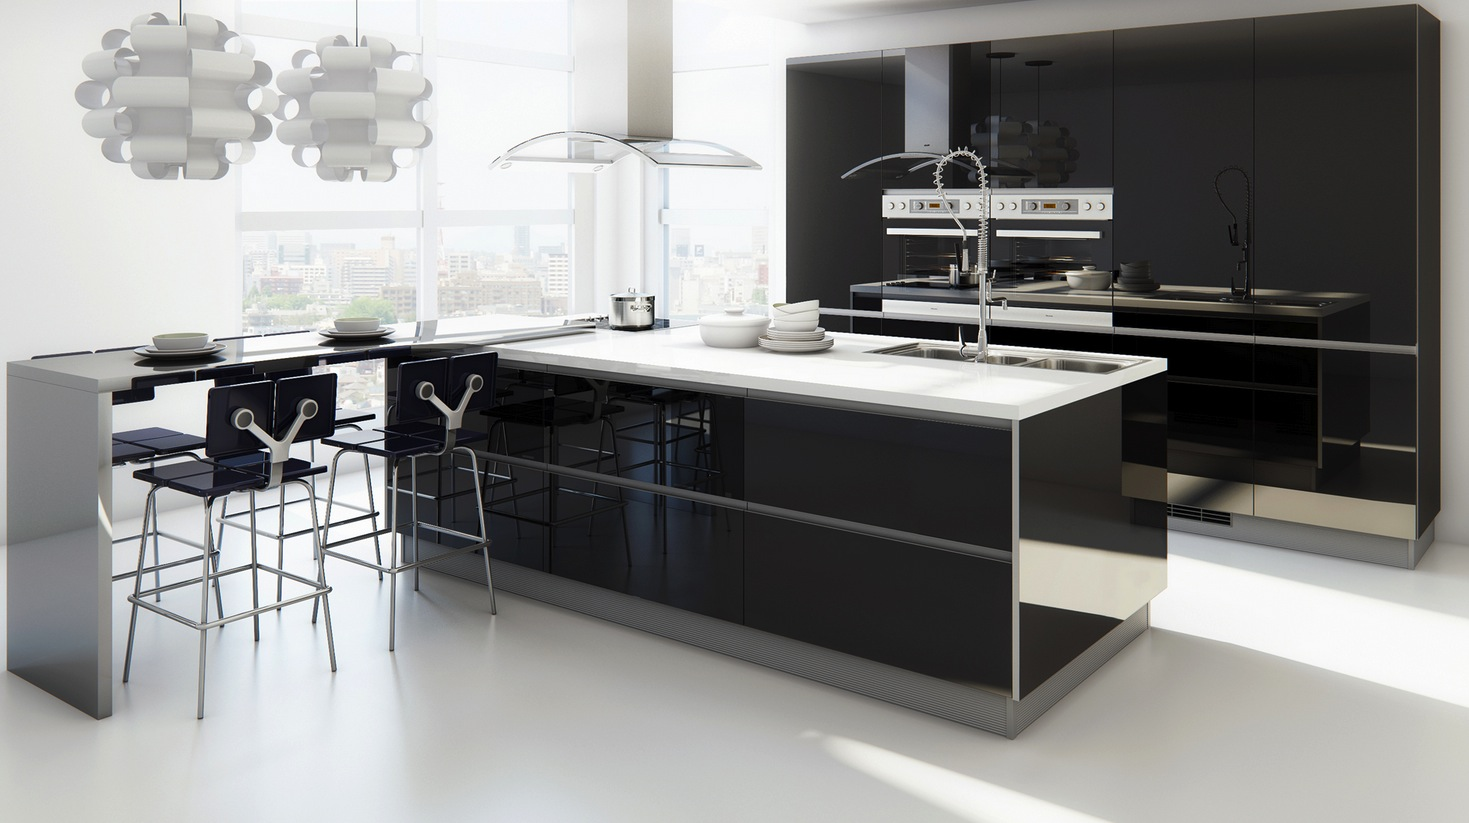 12 modern eat in kitchen designs - Ideas de cocinas ...